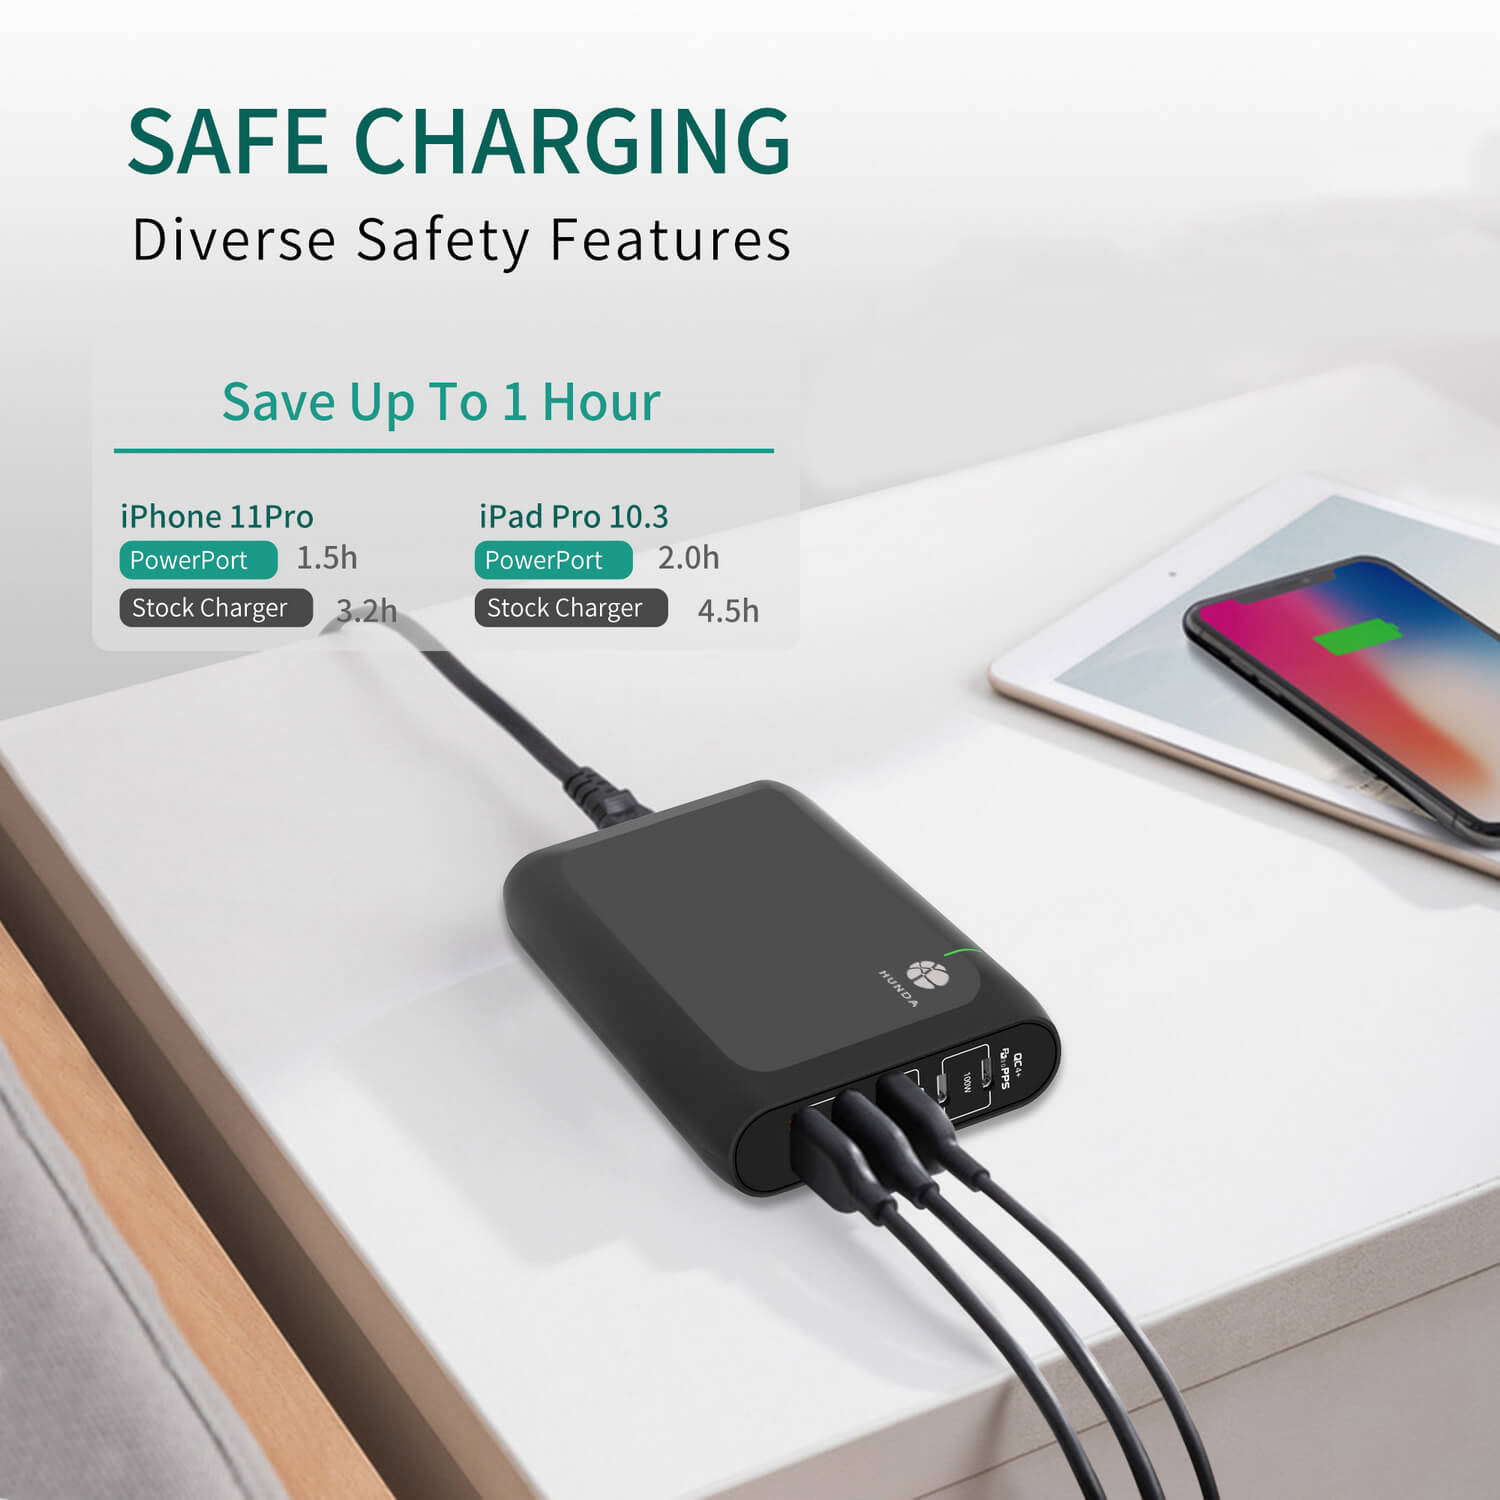 100W USB C Charger with fast charing protocol, pd pps qc3.0